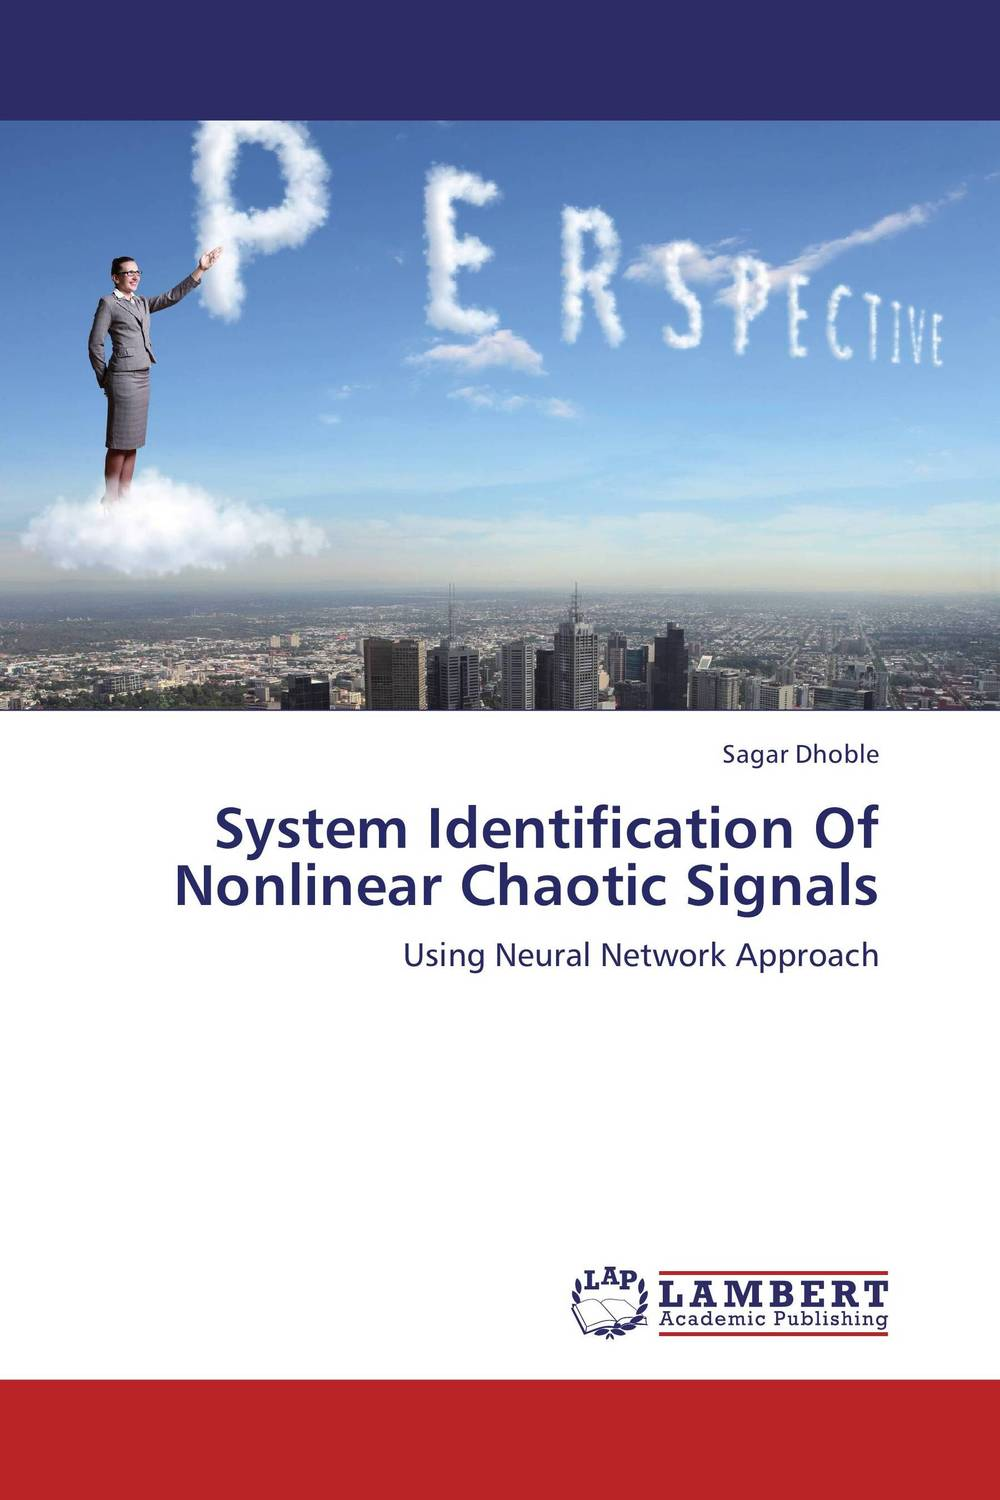 System Identification Of Nonlinear Chaotic Signals набор д специй кубачи